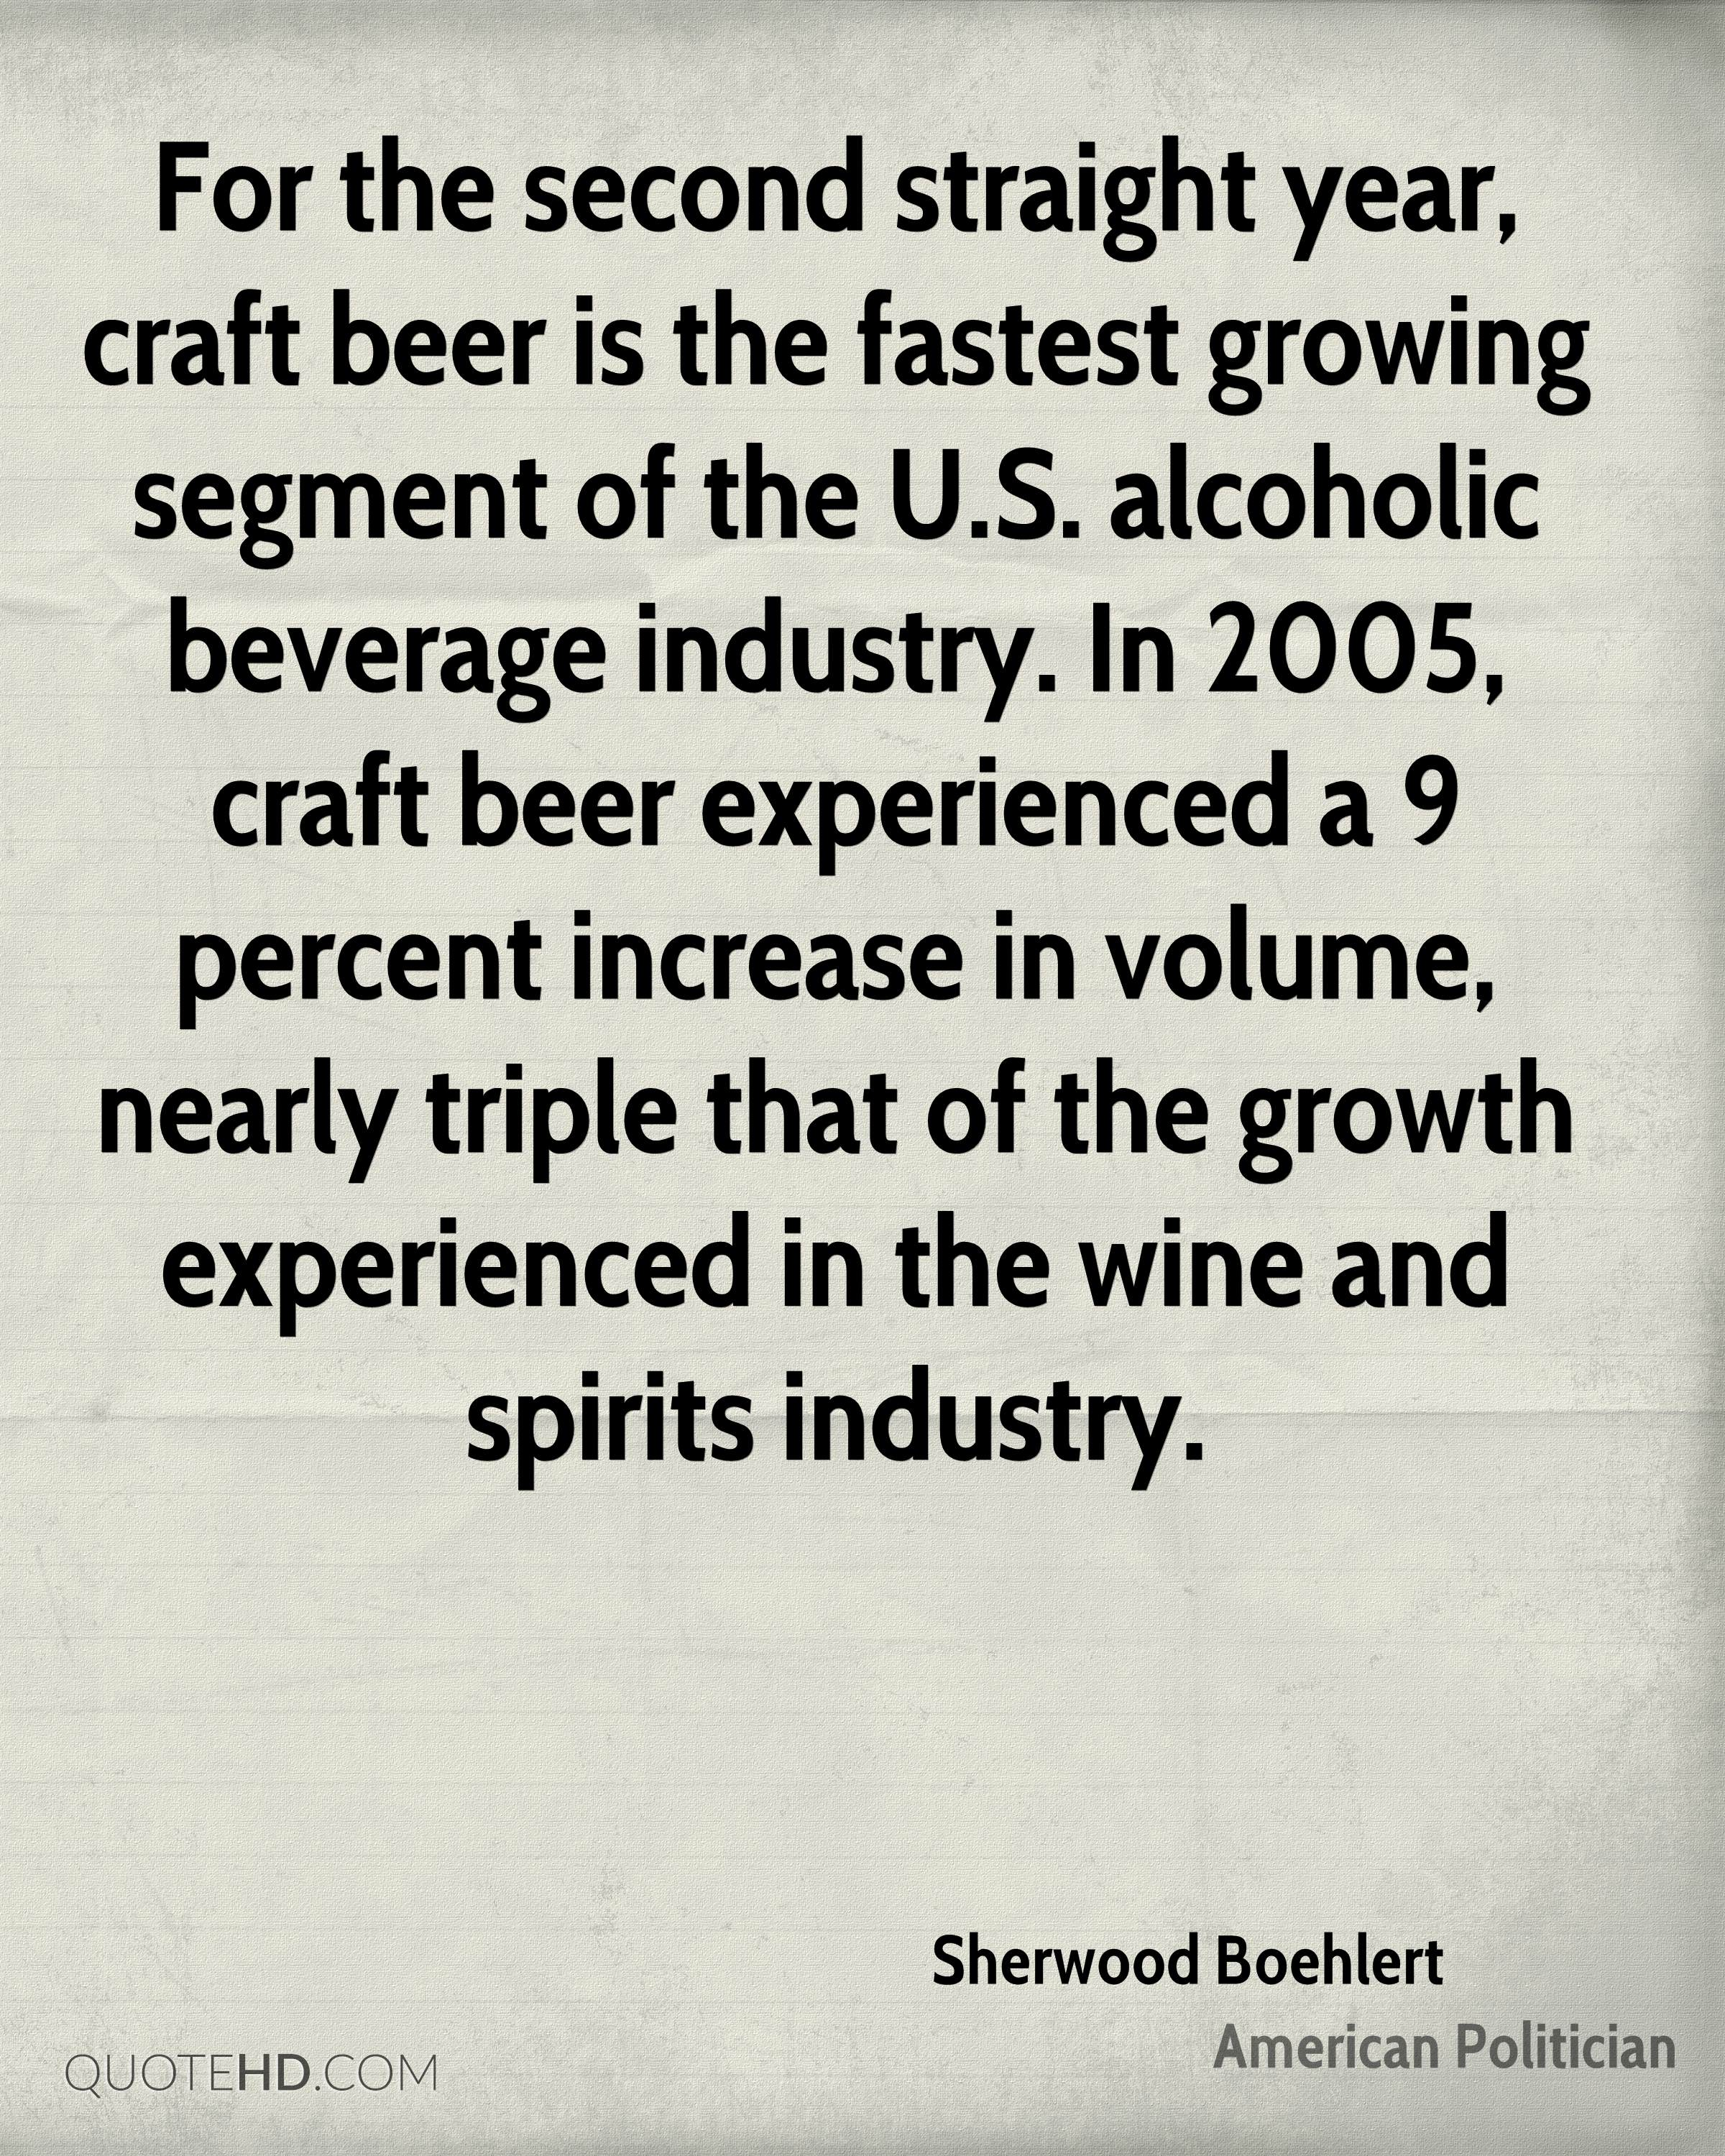 For the second straight year, craft beer is the fastest growing segment of the U.S. alcoholic beverage industry. In 2005, craft beer experienced a 9 percent increase in volume, nearly triple that of the growth experienced in the wine and spirits industry.